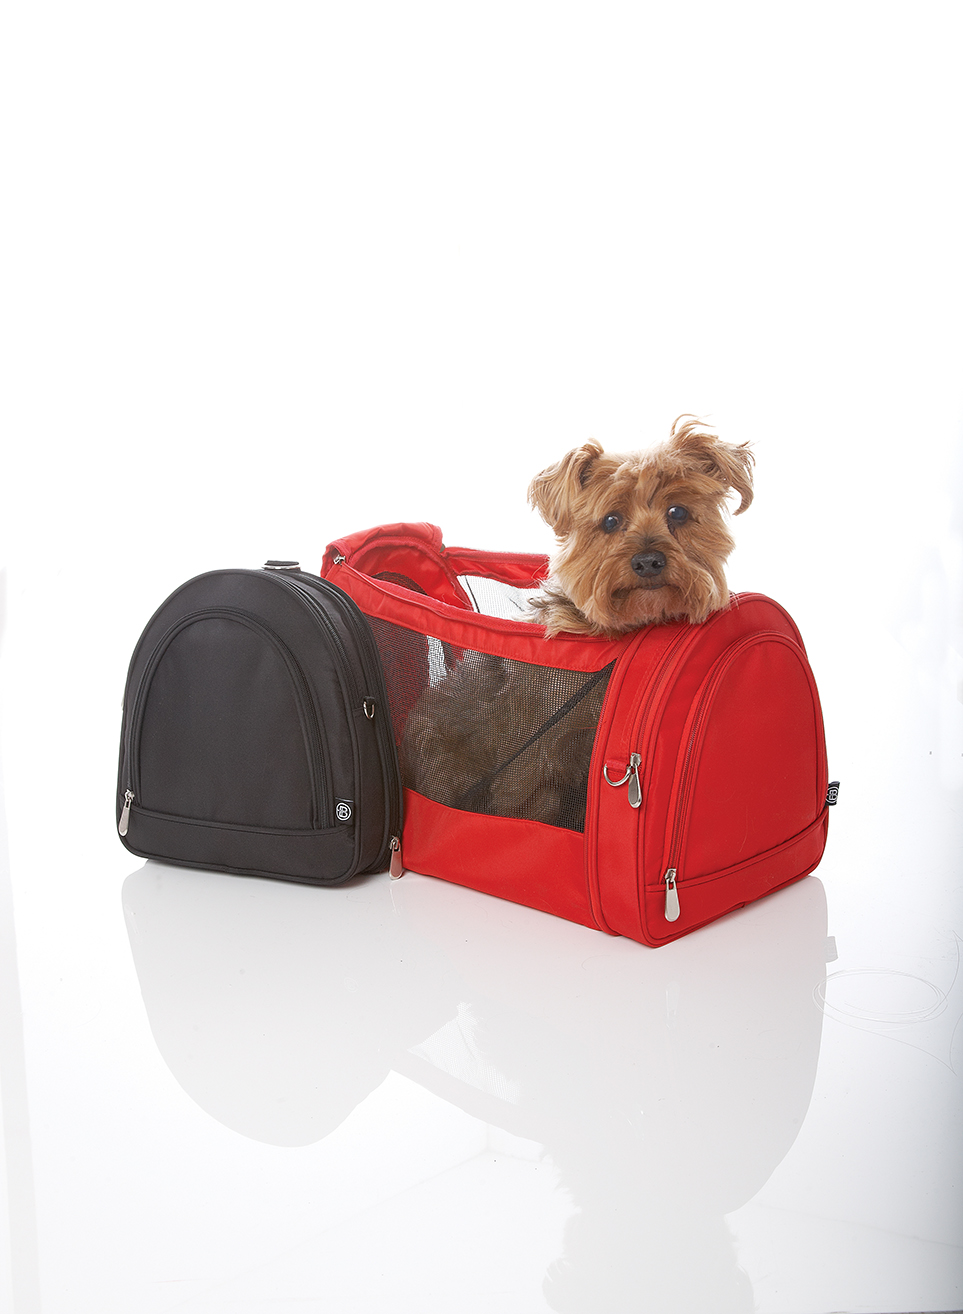 Photography - Dog in Doggy Bag